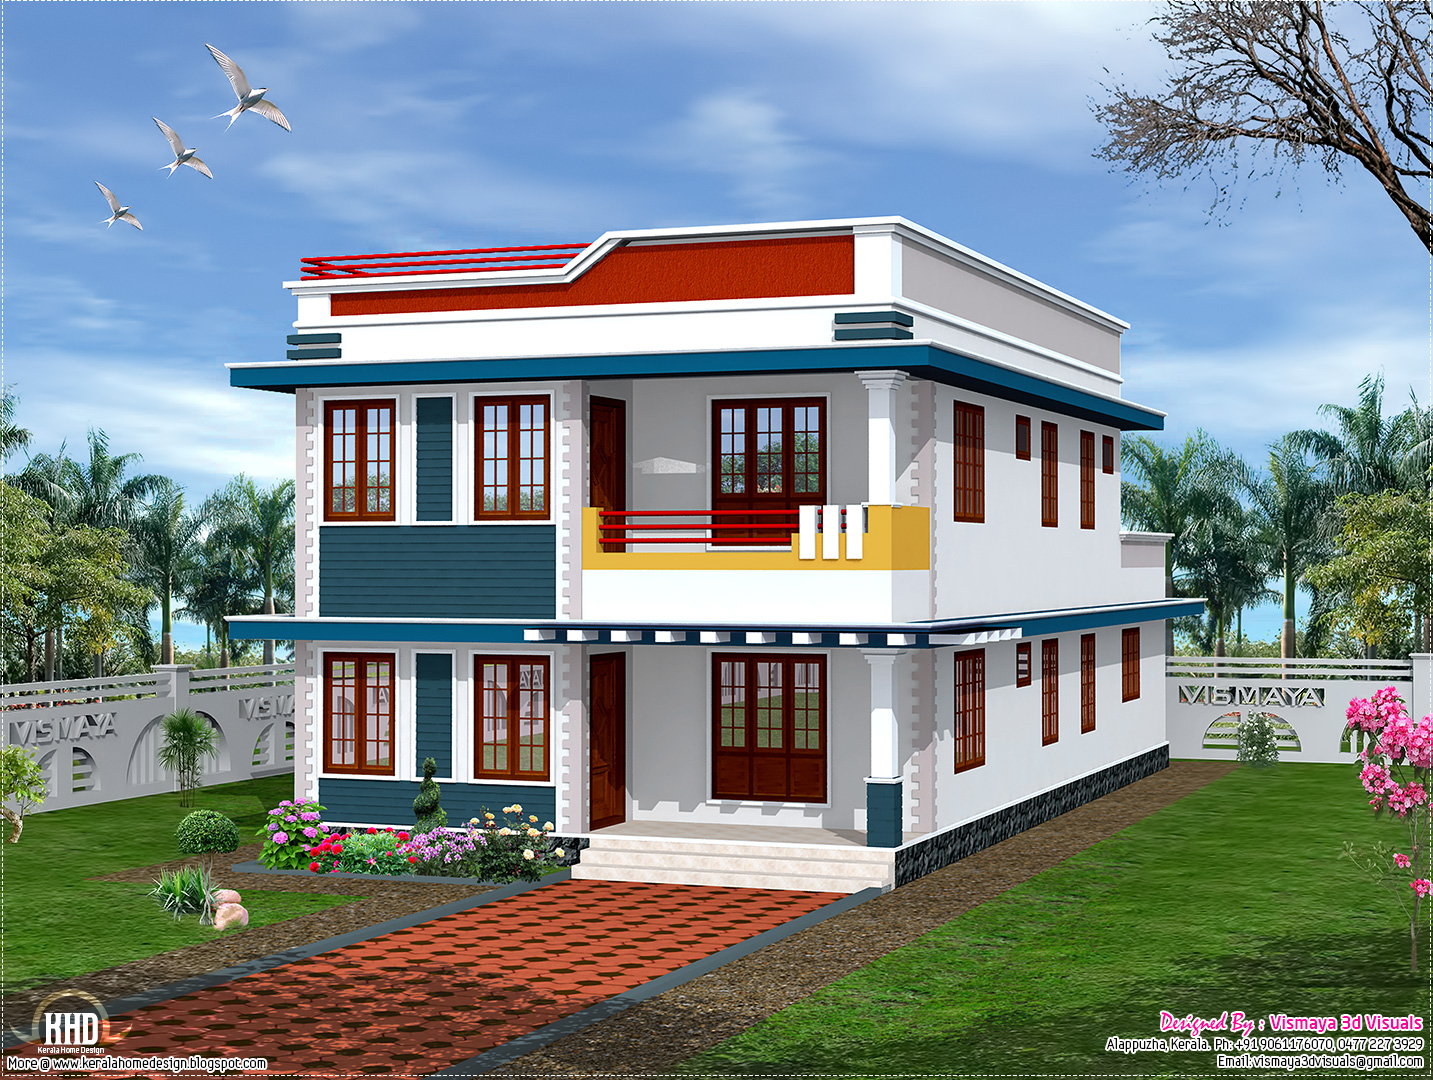 2325 sq.feet flat roof house elevation